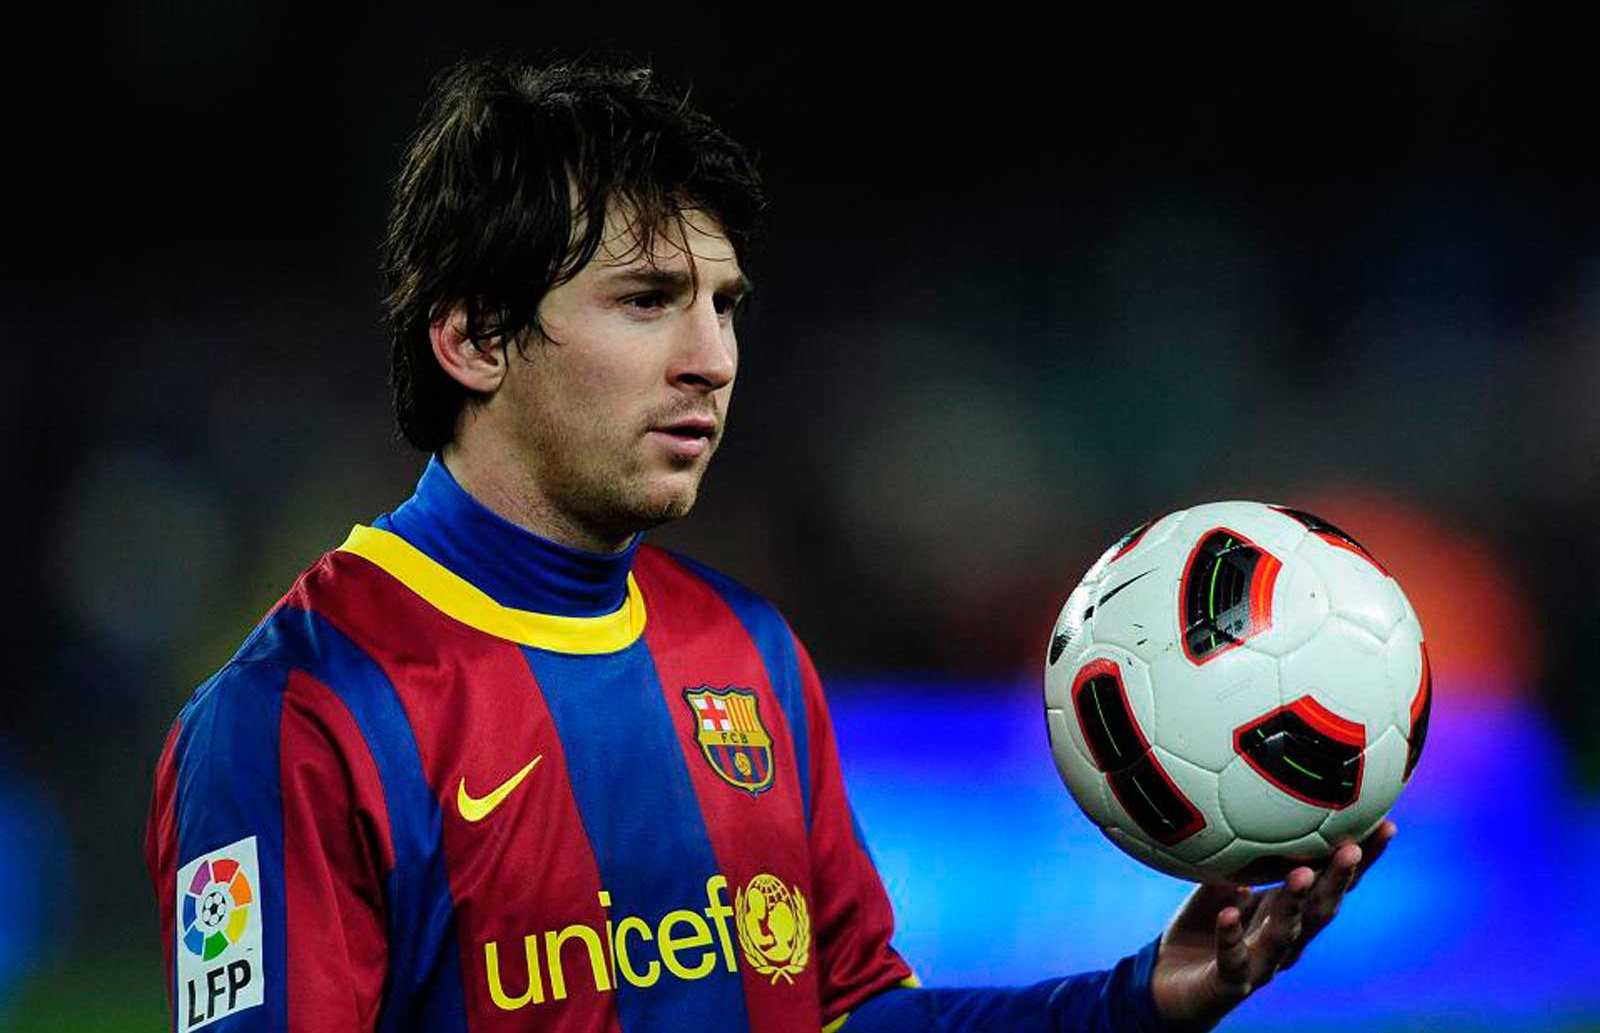 » FC Barcelona: A plan to sell Lionel Messi